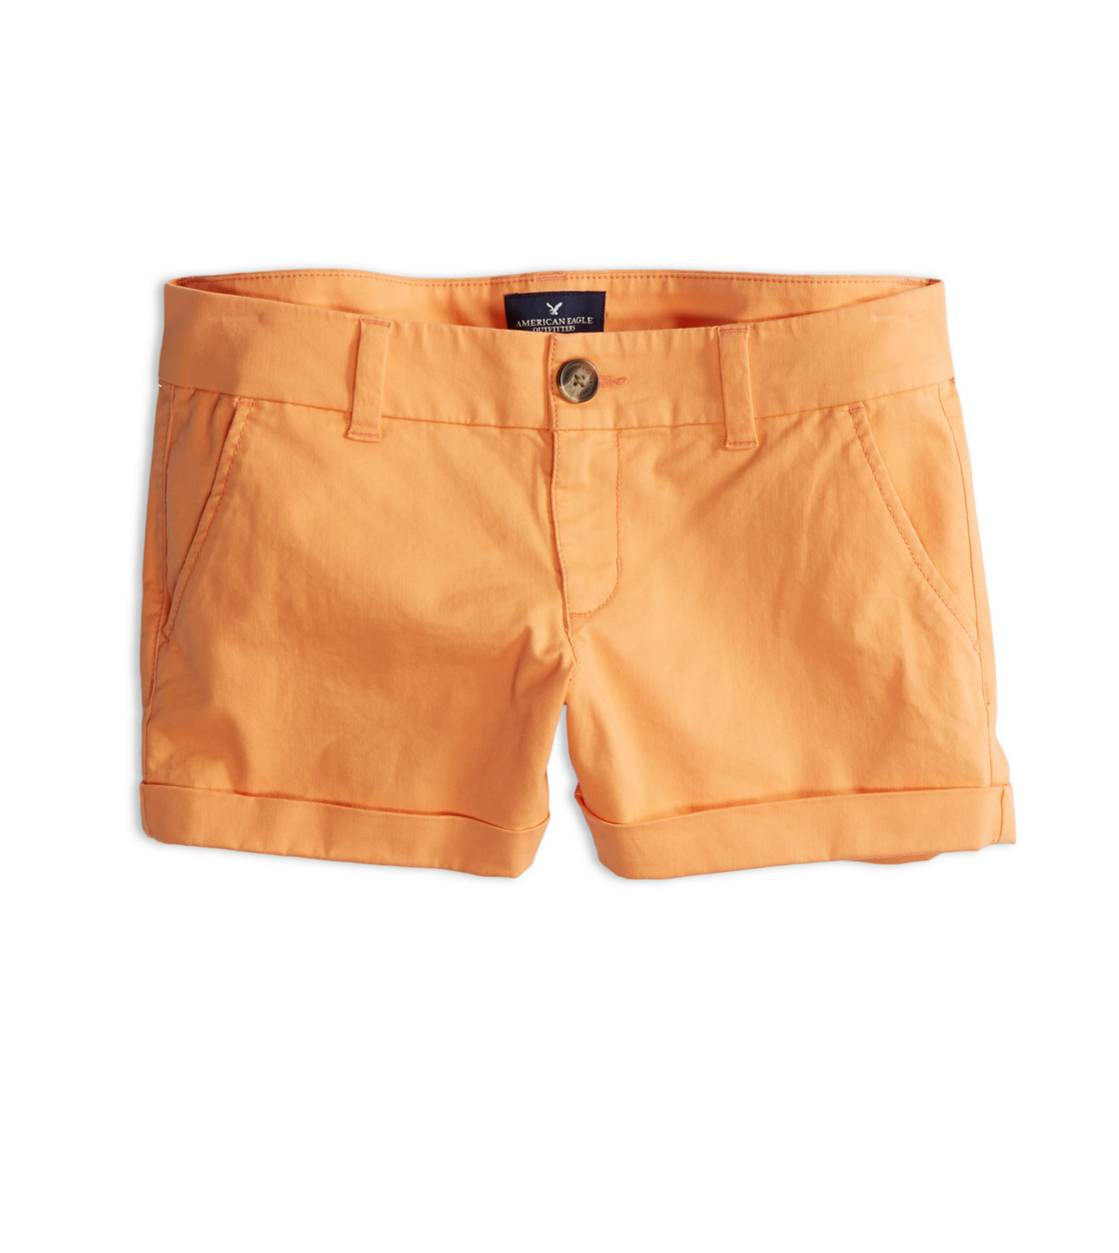 Peachy Keen AEO Factory Midi Short